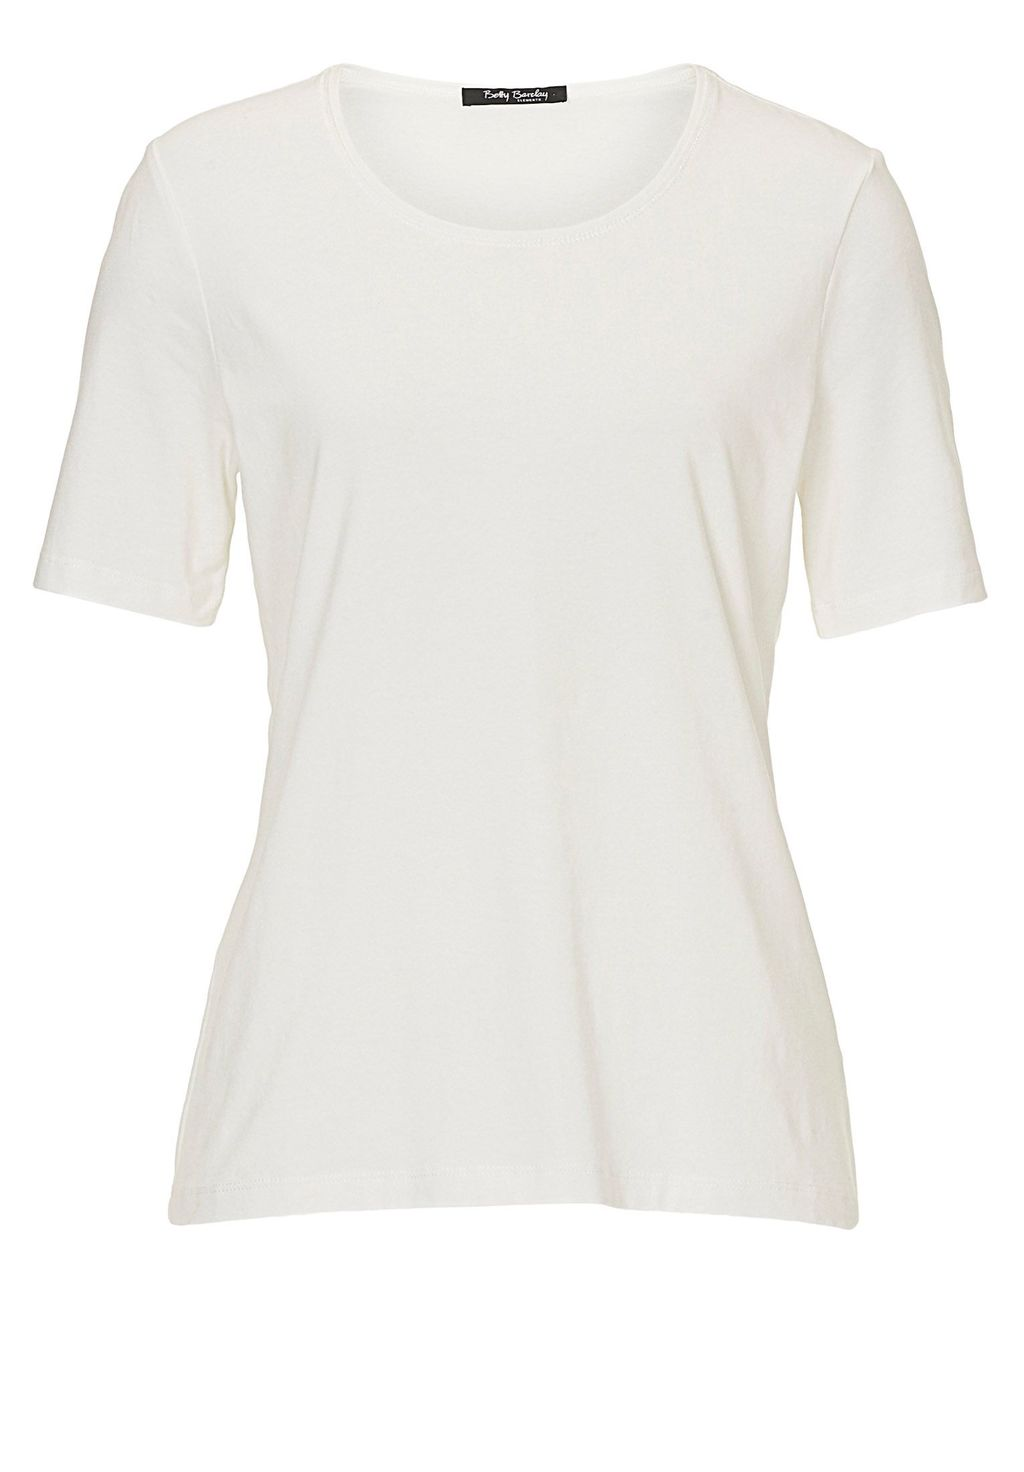 Short Sleeved T Shirt, Off White - neckline: round neck; pattern: plain; style: t-shirt; predominant colour: ivory/cream; occasions: casual; length: standard; fibres: cotton - 100%; fit: body skimming; sleeve length: short sleeve; sleeve style: standard; pattern type: fabric; texture group: jersey - stretchy/drapey; season: s/s 2016; wardrobe: basic